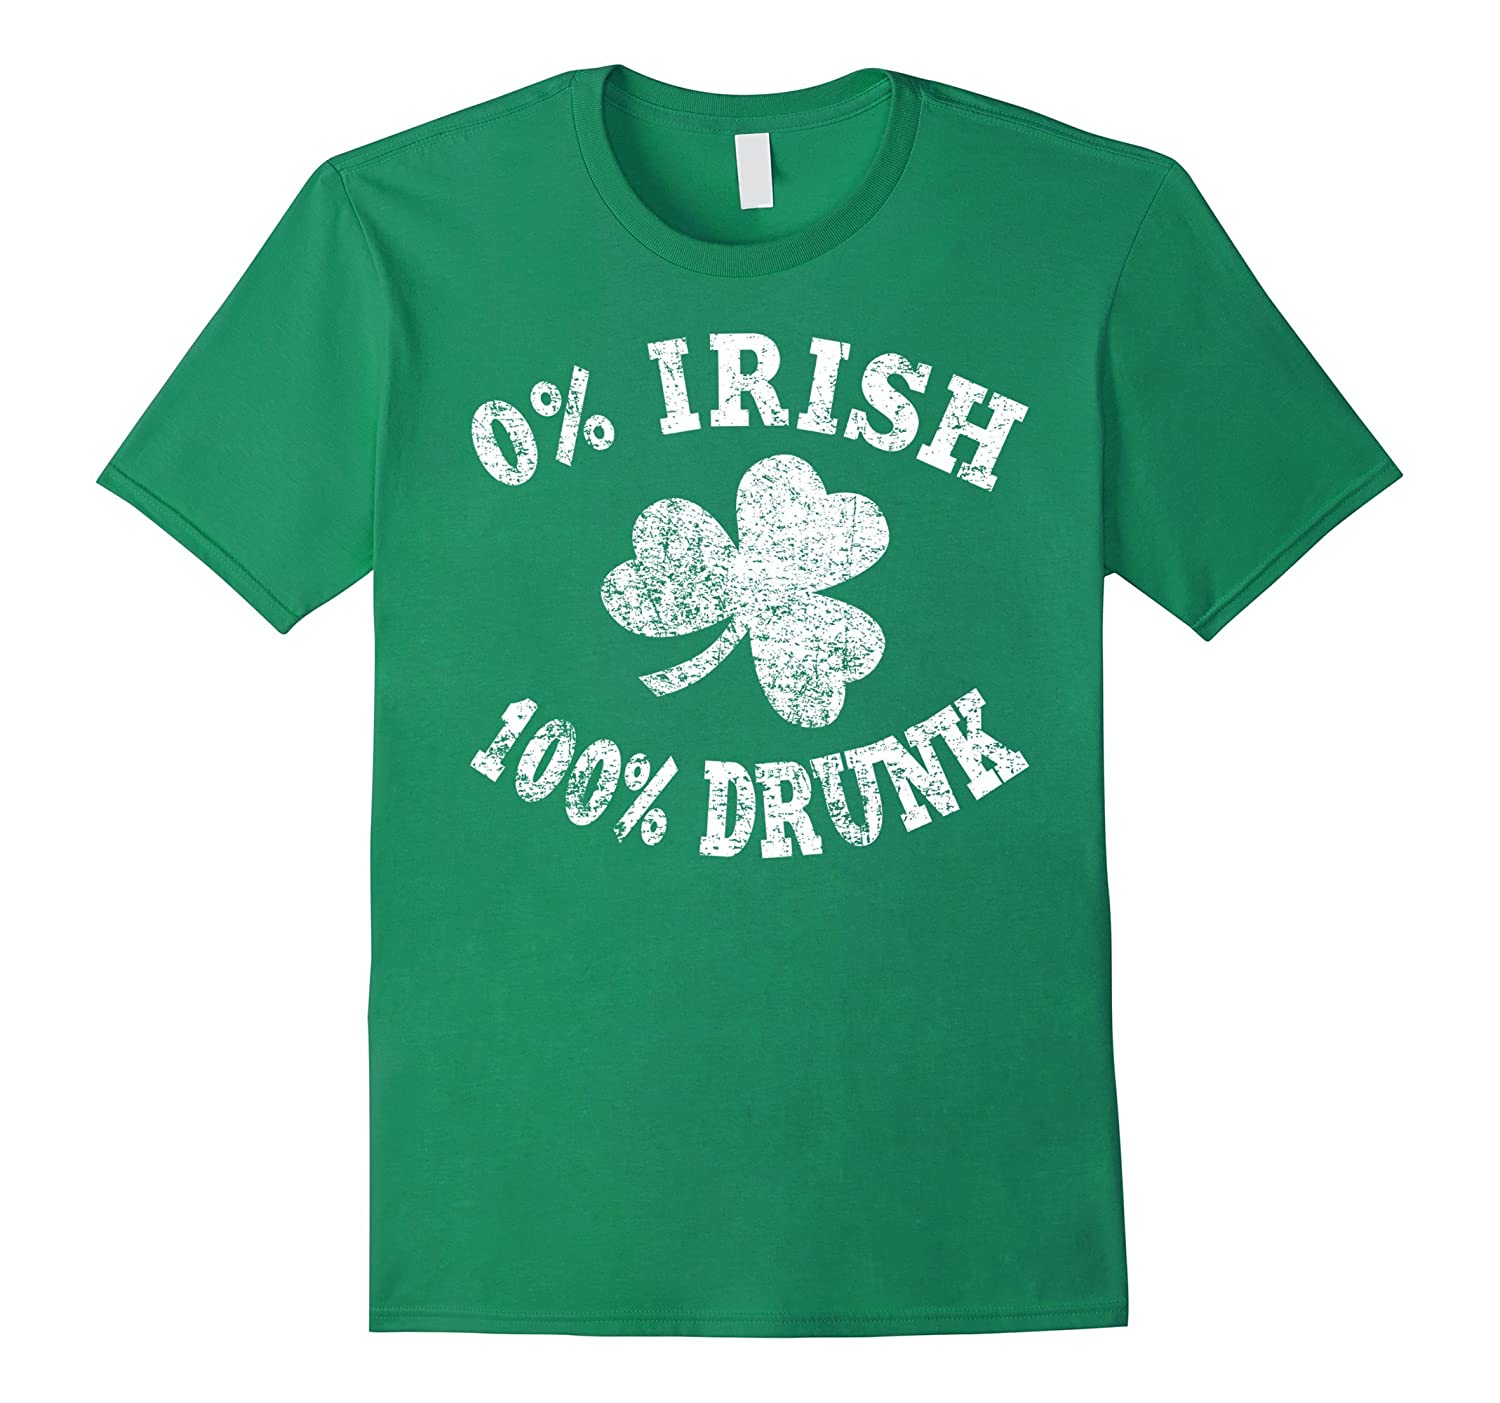 0 Irish 100 Drunk Shirt-TD